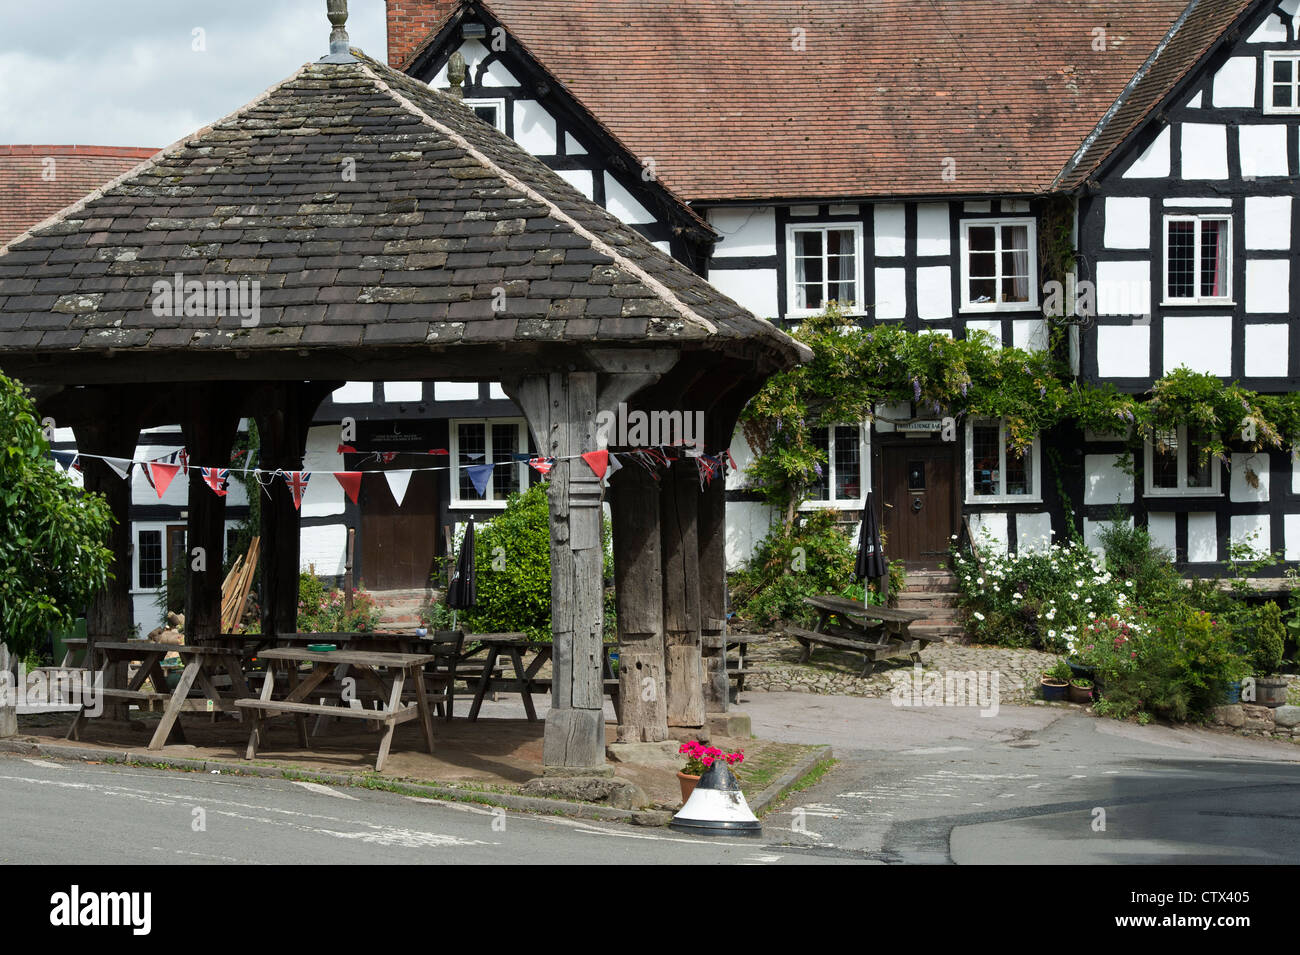 The New Inn public house. Black and White English Timber framed building. Pembridge. Herefordshire. England - Stock Image